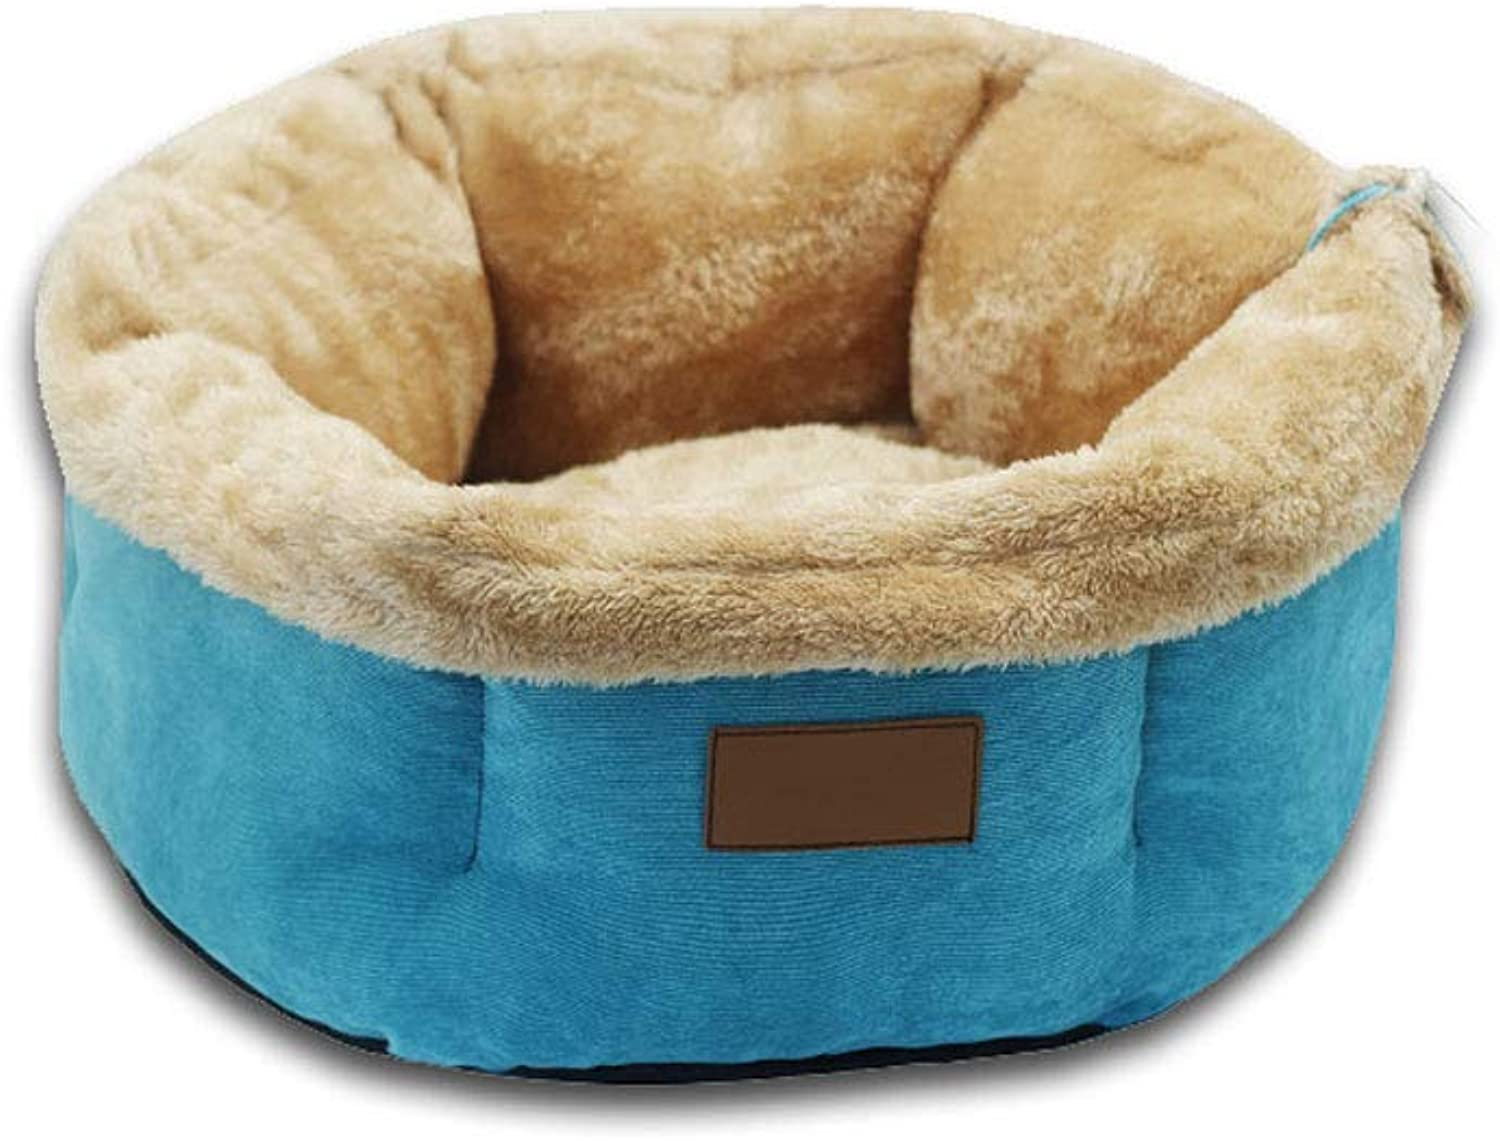 ZOUQILAI Autumn Winter Models Warm Cat Litter Kennel Small Dog Closed Deep Sleep Nest Cat Sleeping Bag Removable Washable (color   bluee, Size   L)